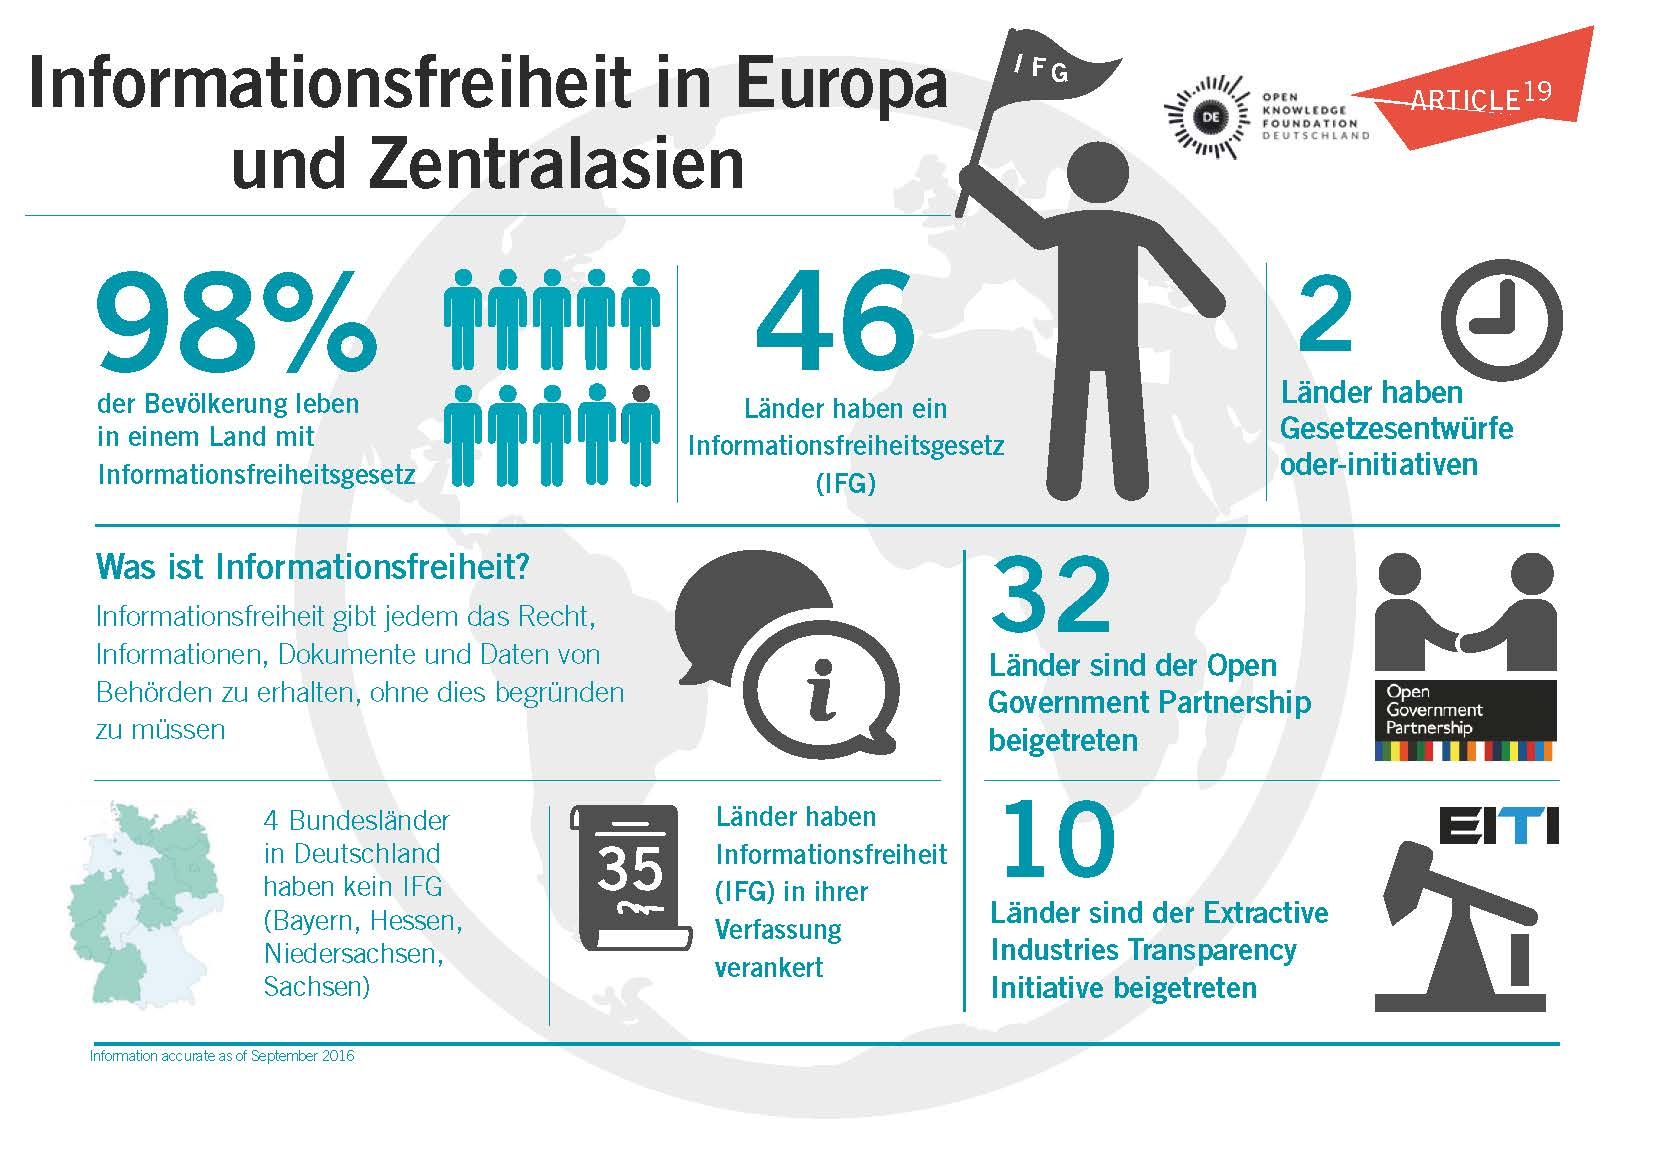 Informationsfreiheit in Europa